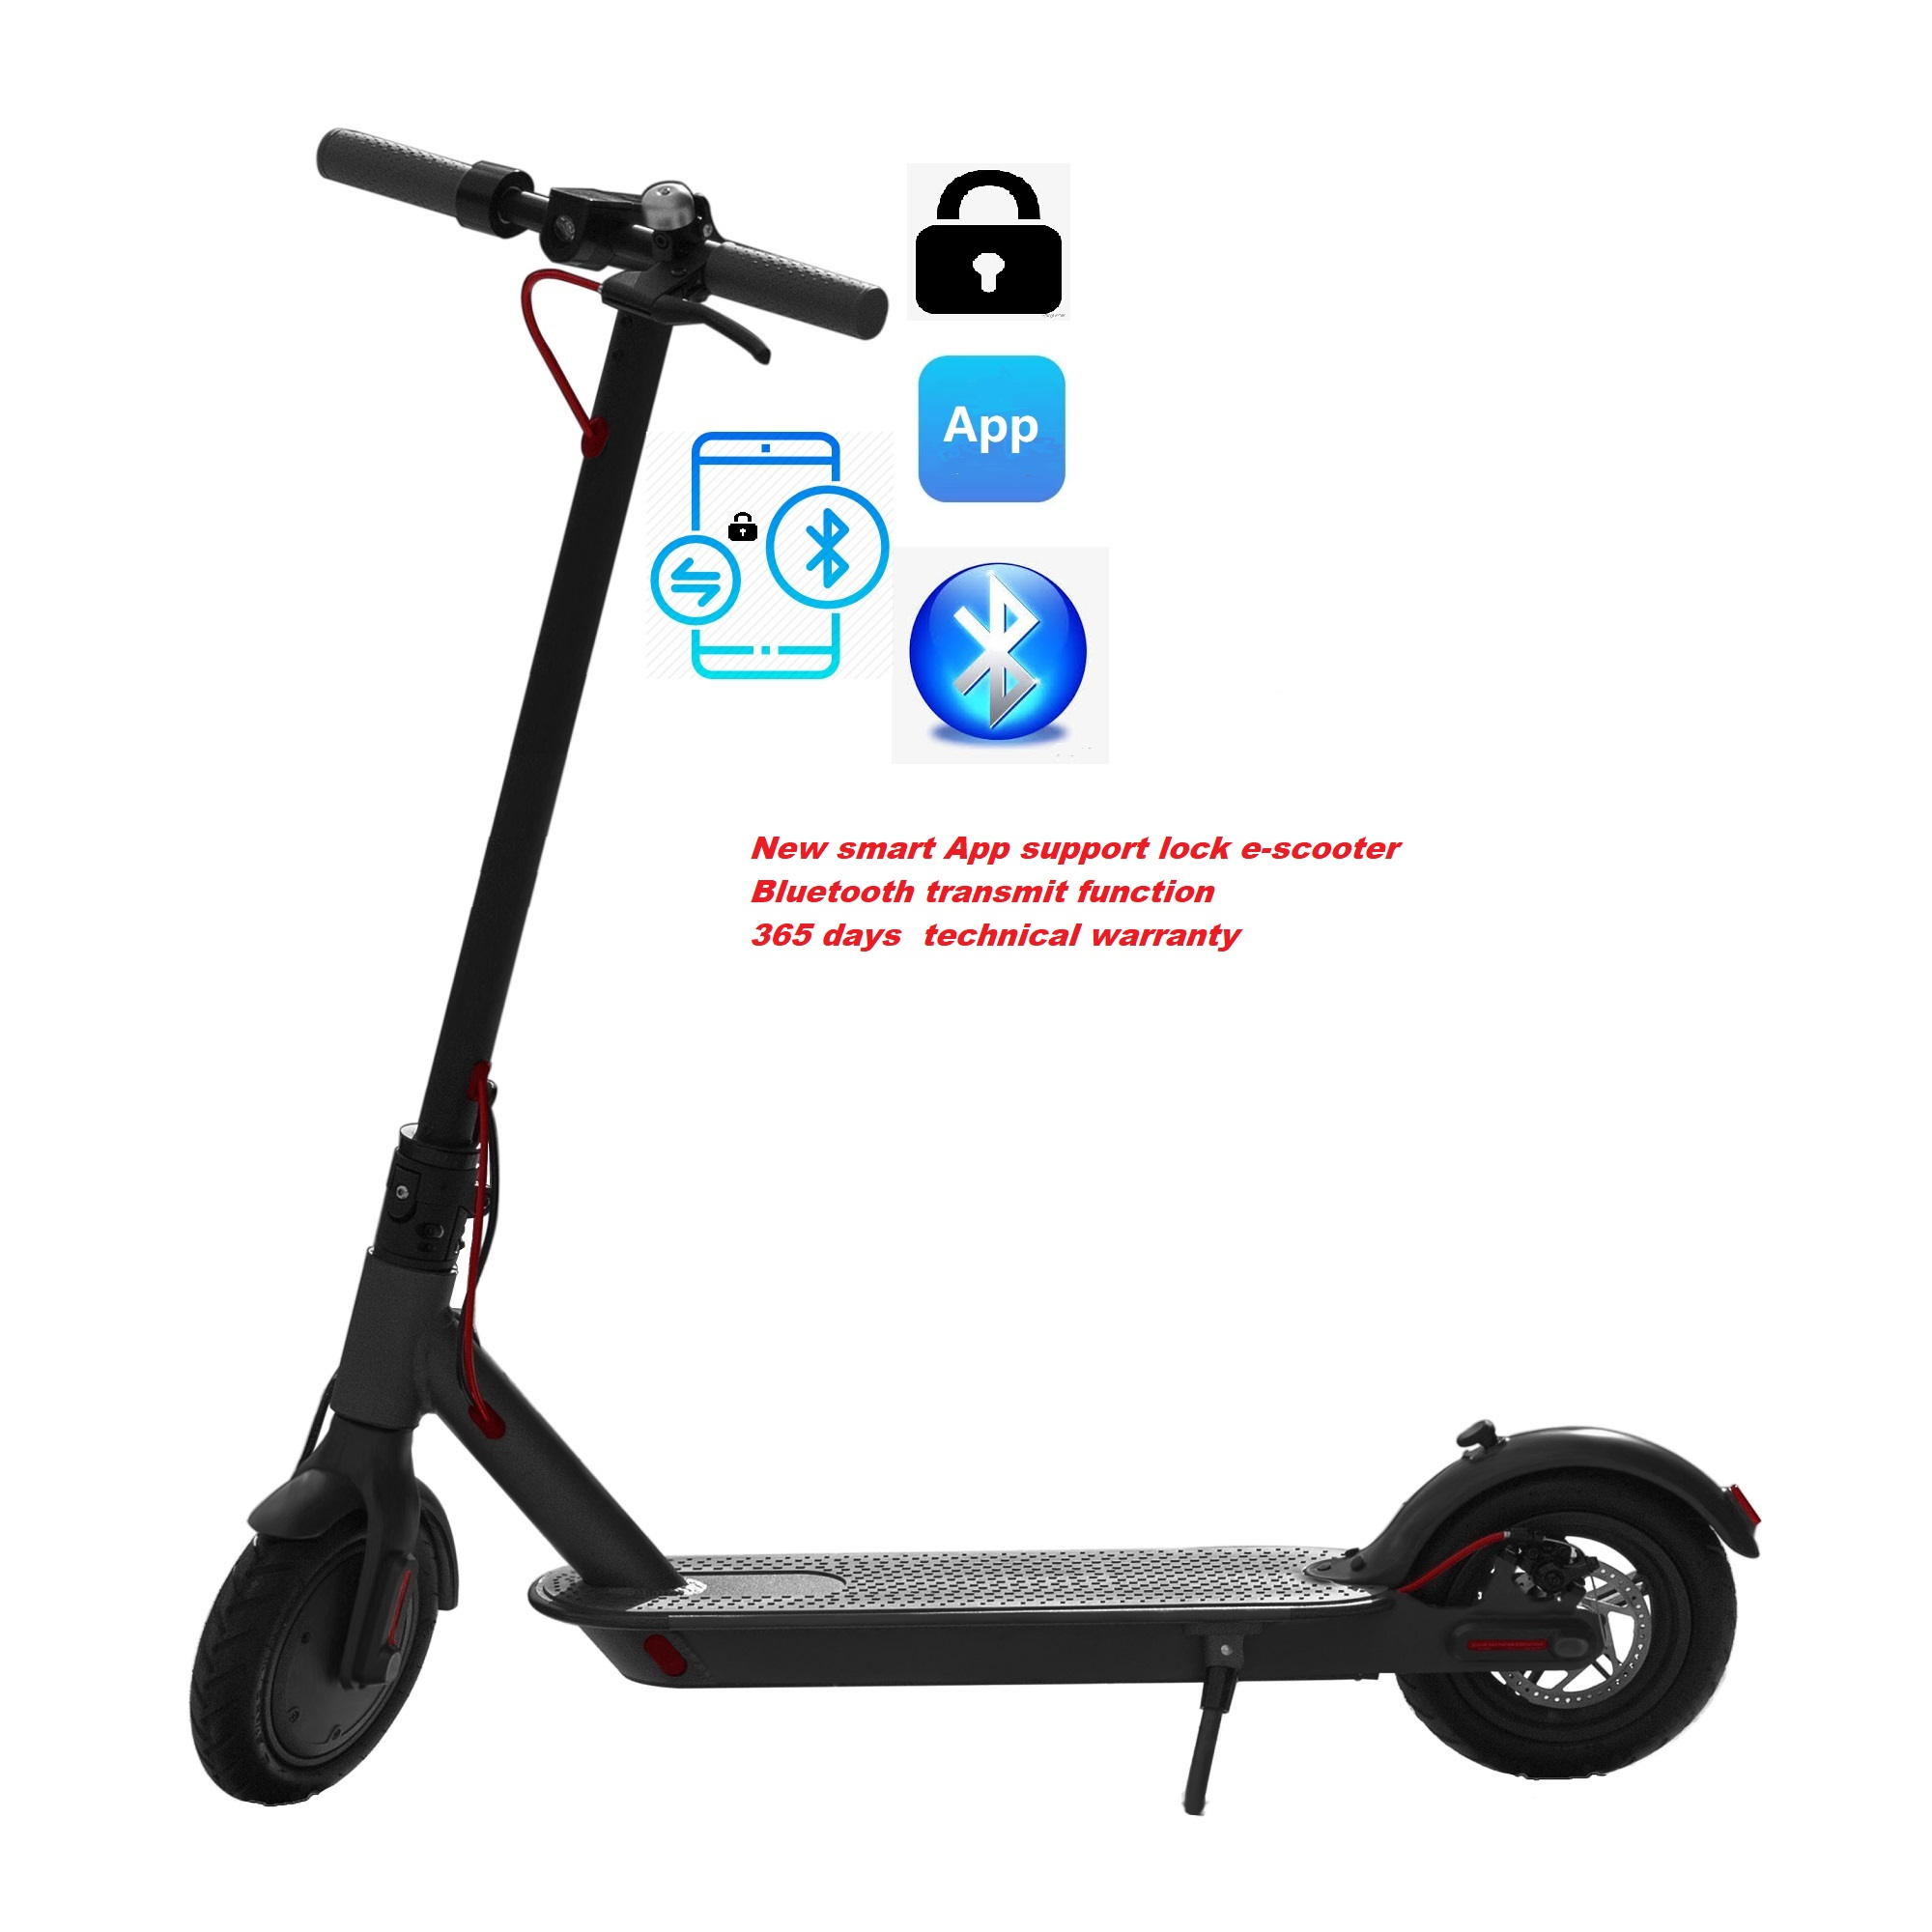 SUPERTEFF EW6 new generation kugooPro App electric scooter 8.5 e-scooter lock function color LCD display scooter loading 120kg